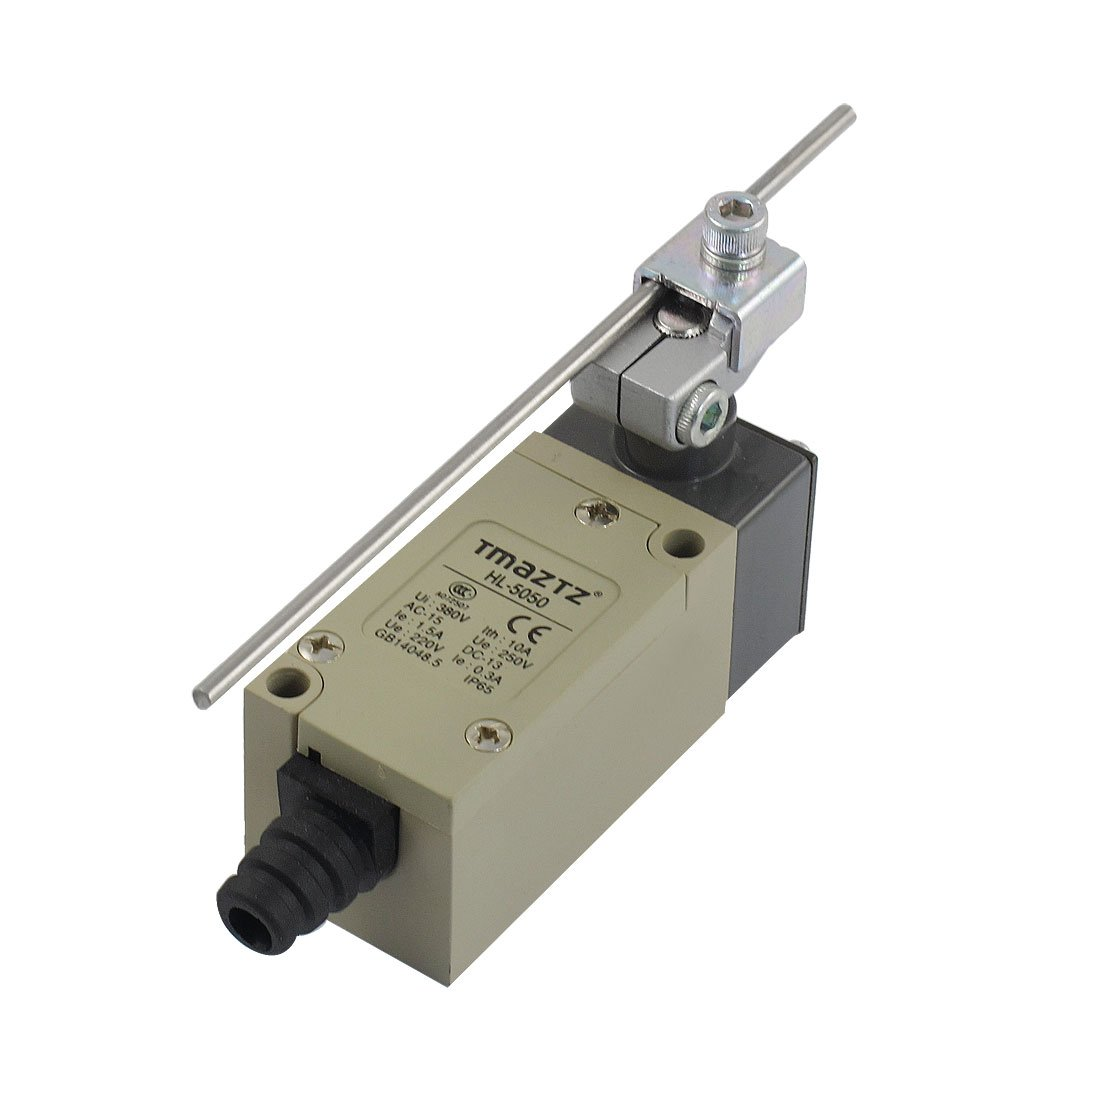 uxcell HL-5050 Rotary Adjustable Lever Arm Momentary Limit Switch 380V 10A